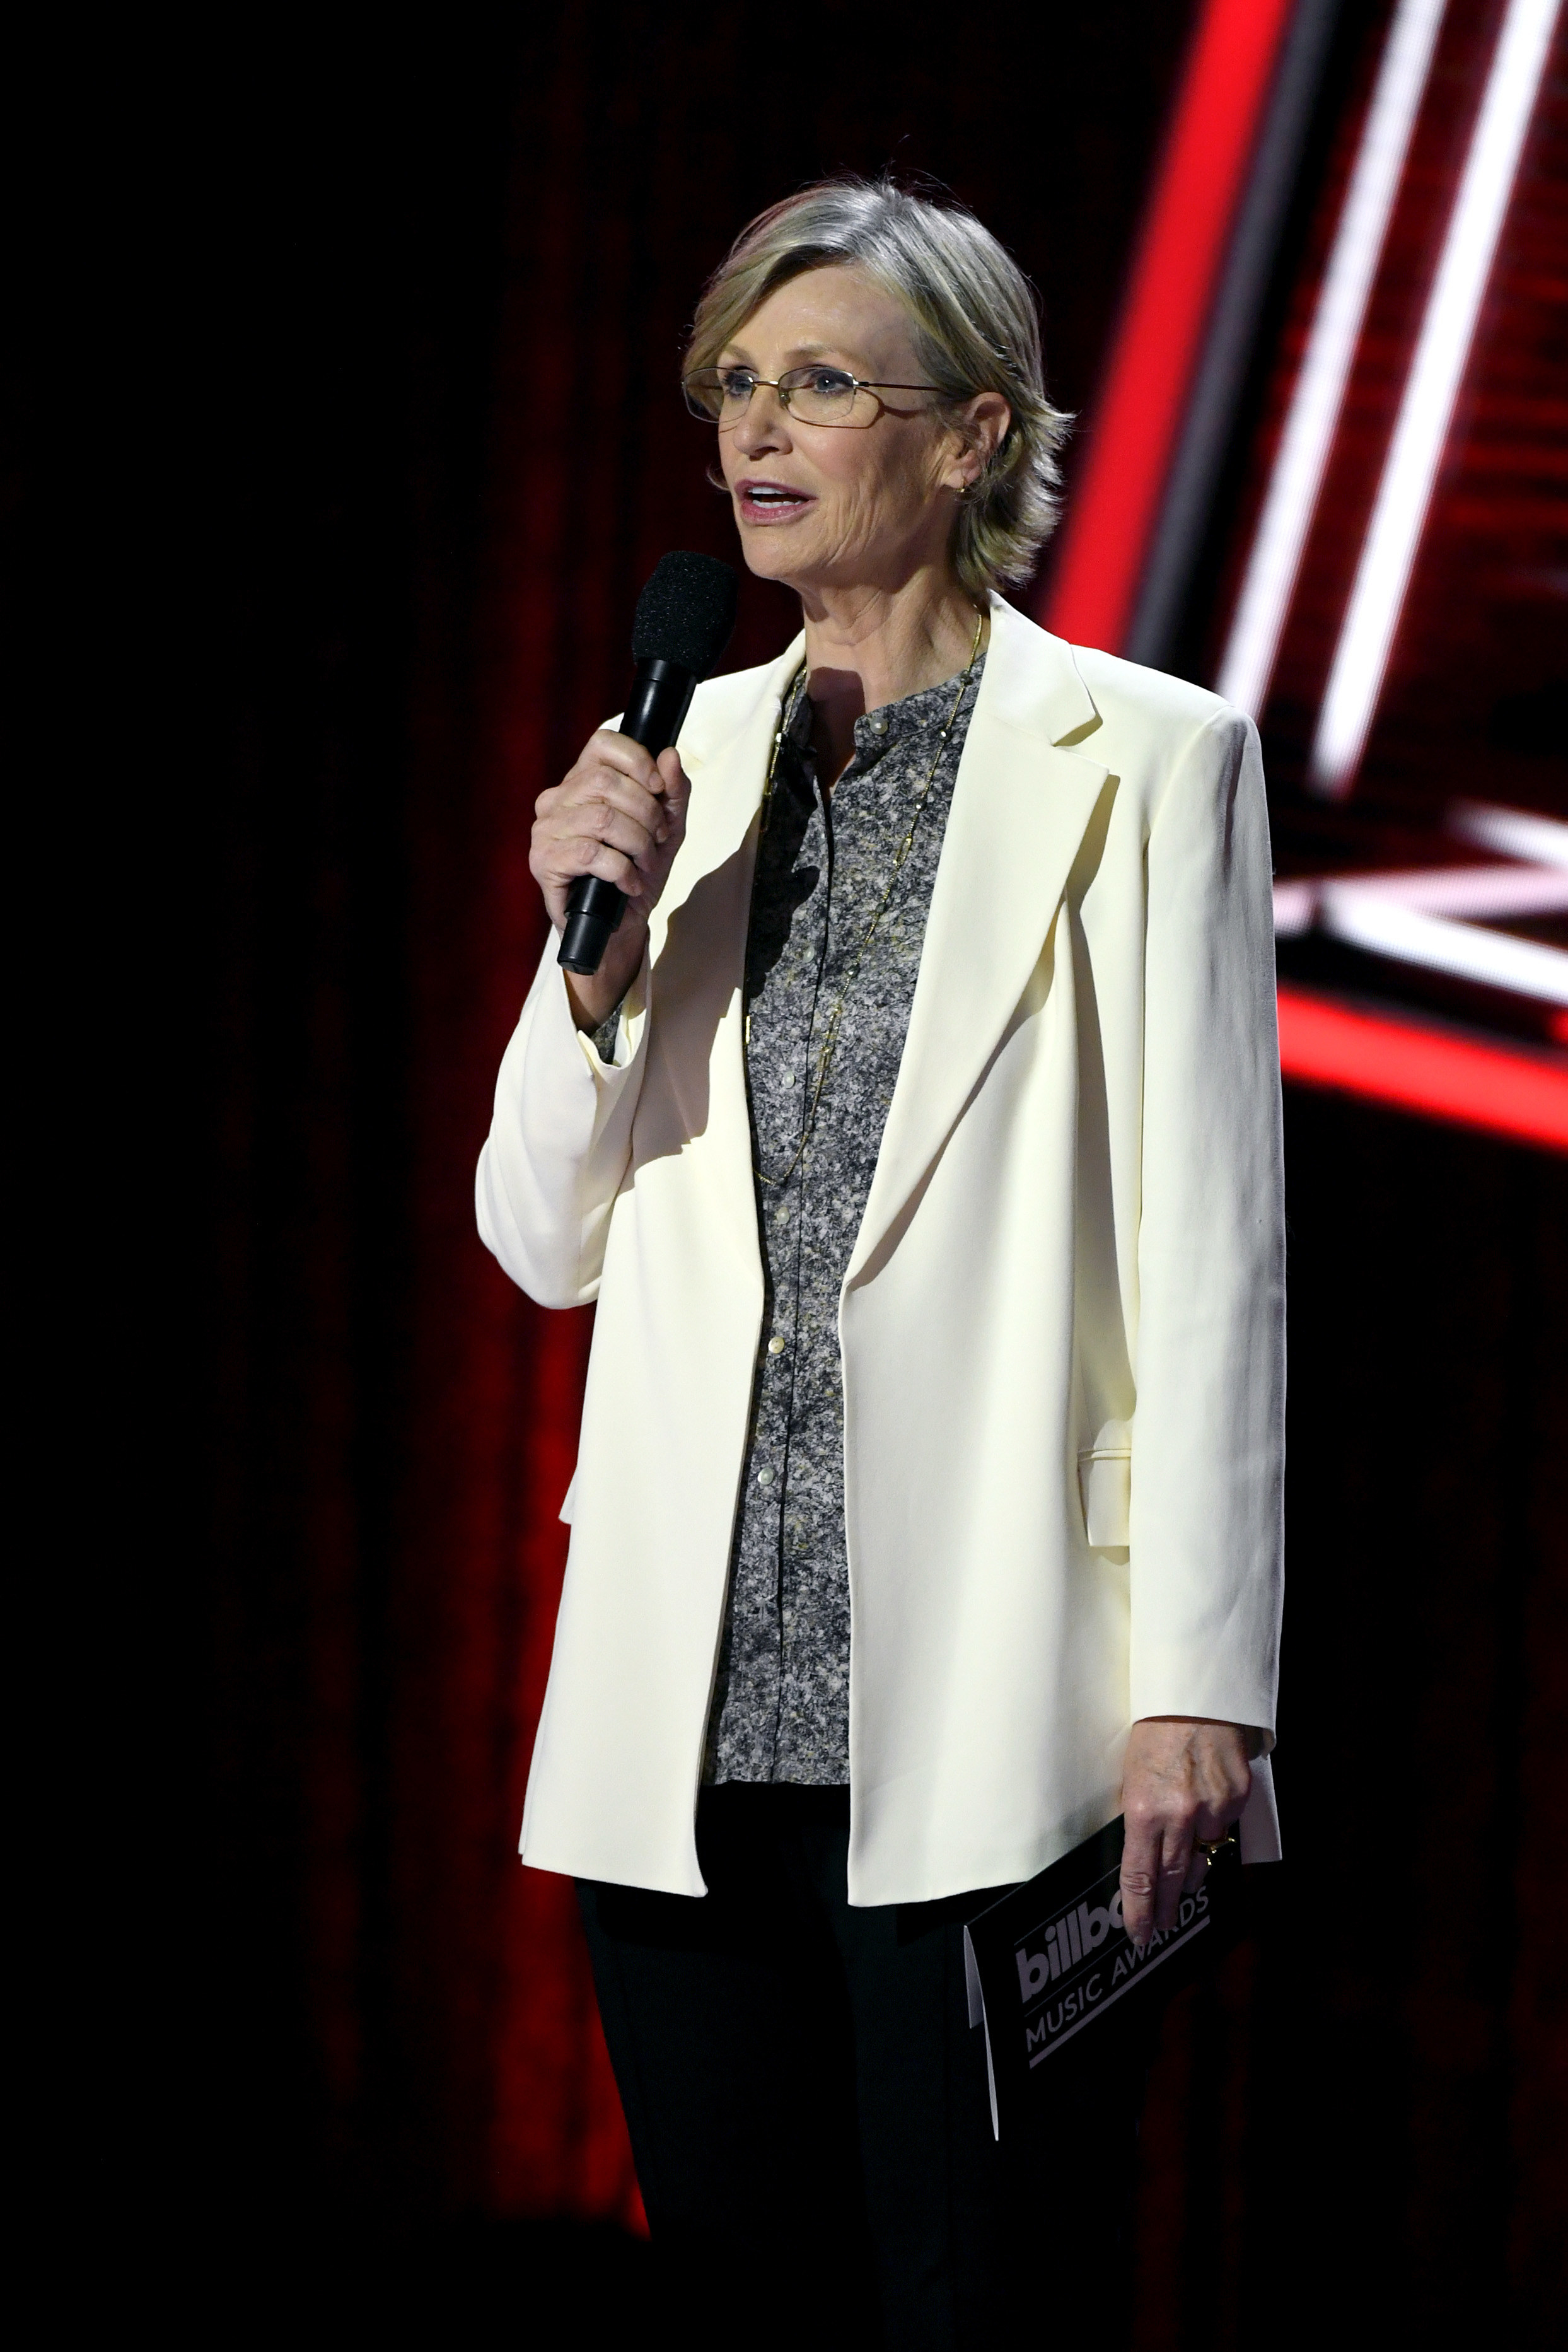 Jane Lynch at the 2020 Billboard Music Awards